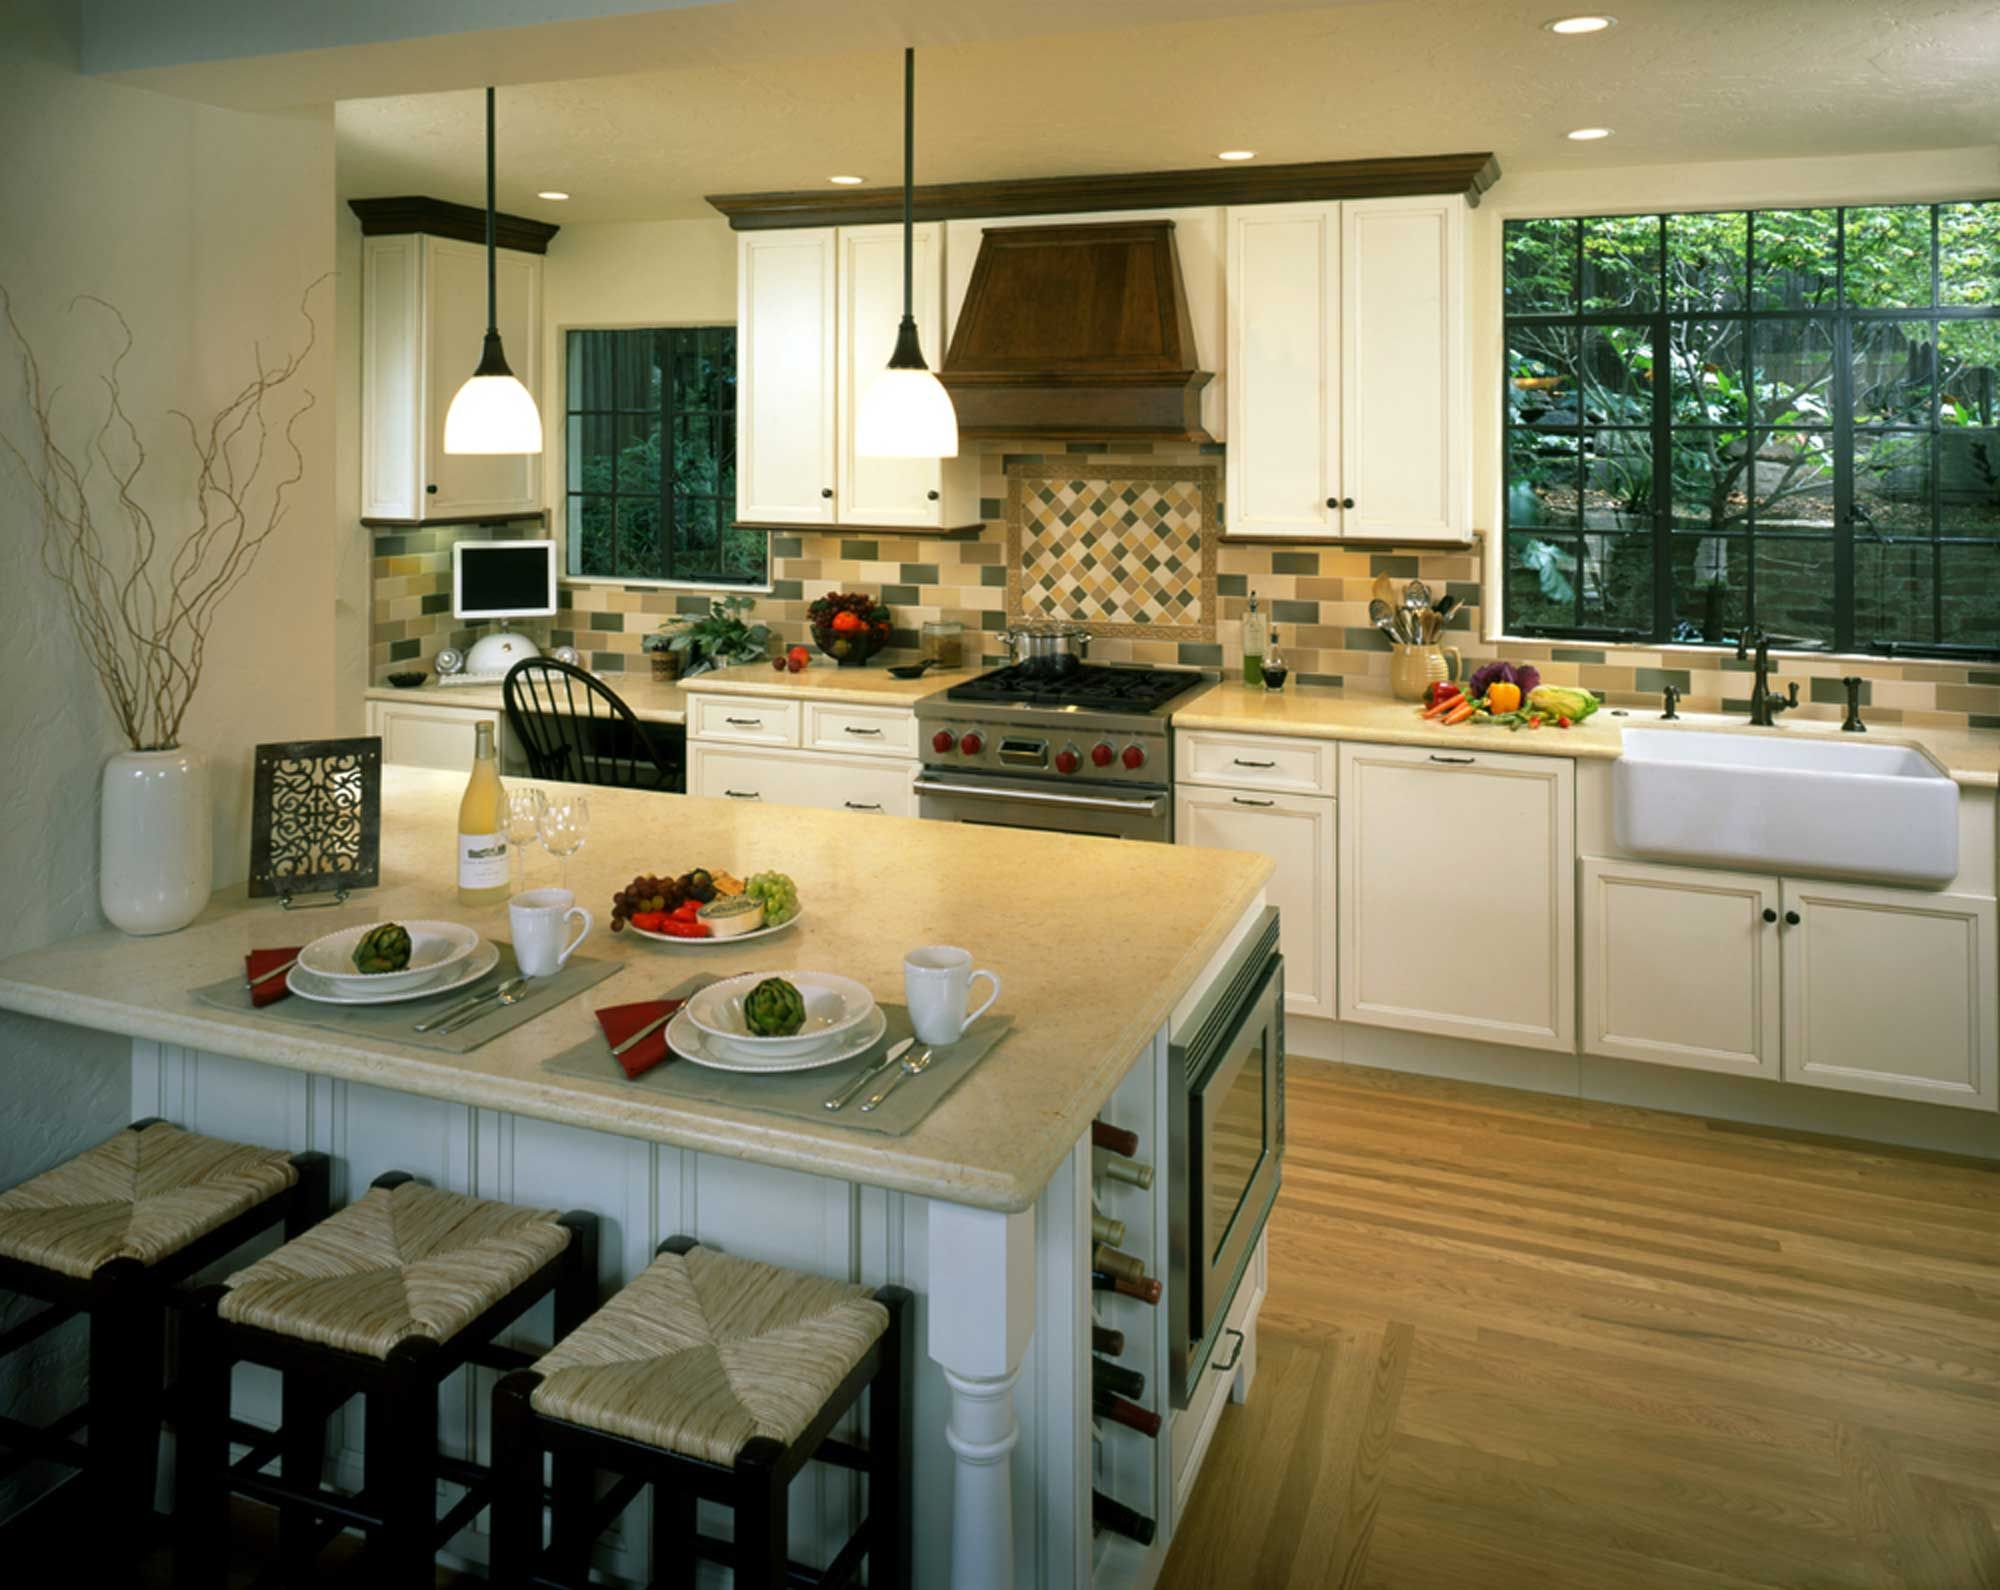 Bath And Kitchen Remodeling Decor opening wall between kitchen and dining room - google search